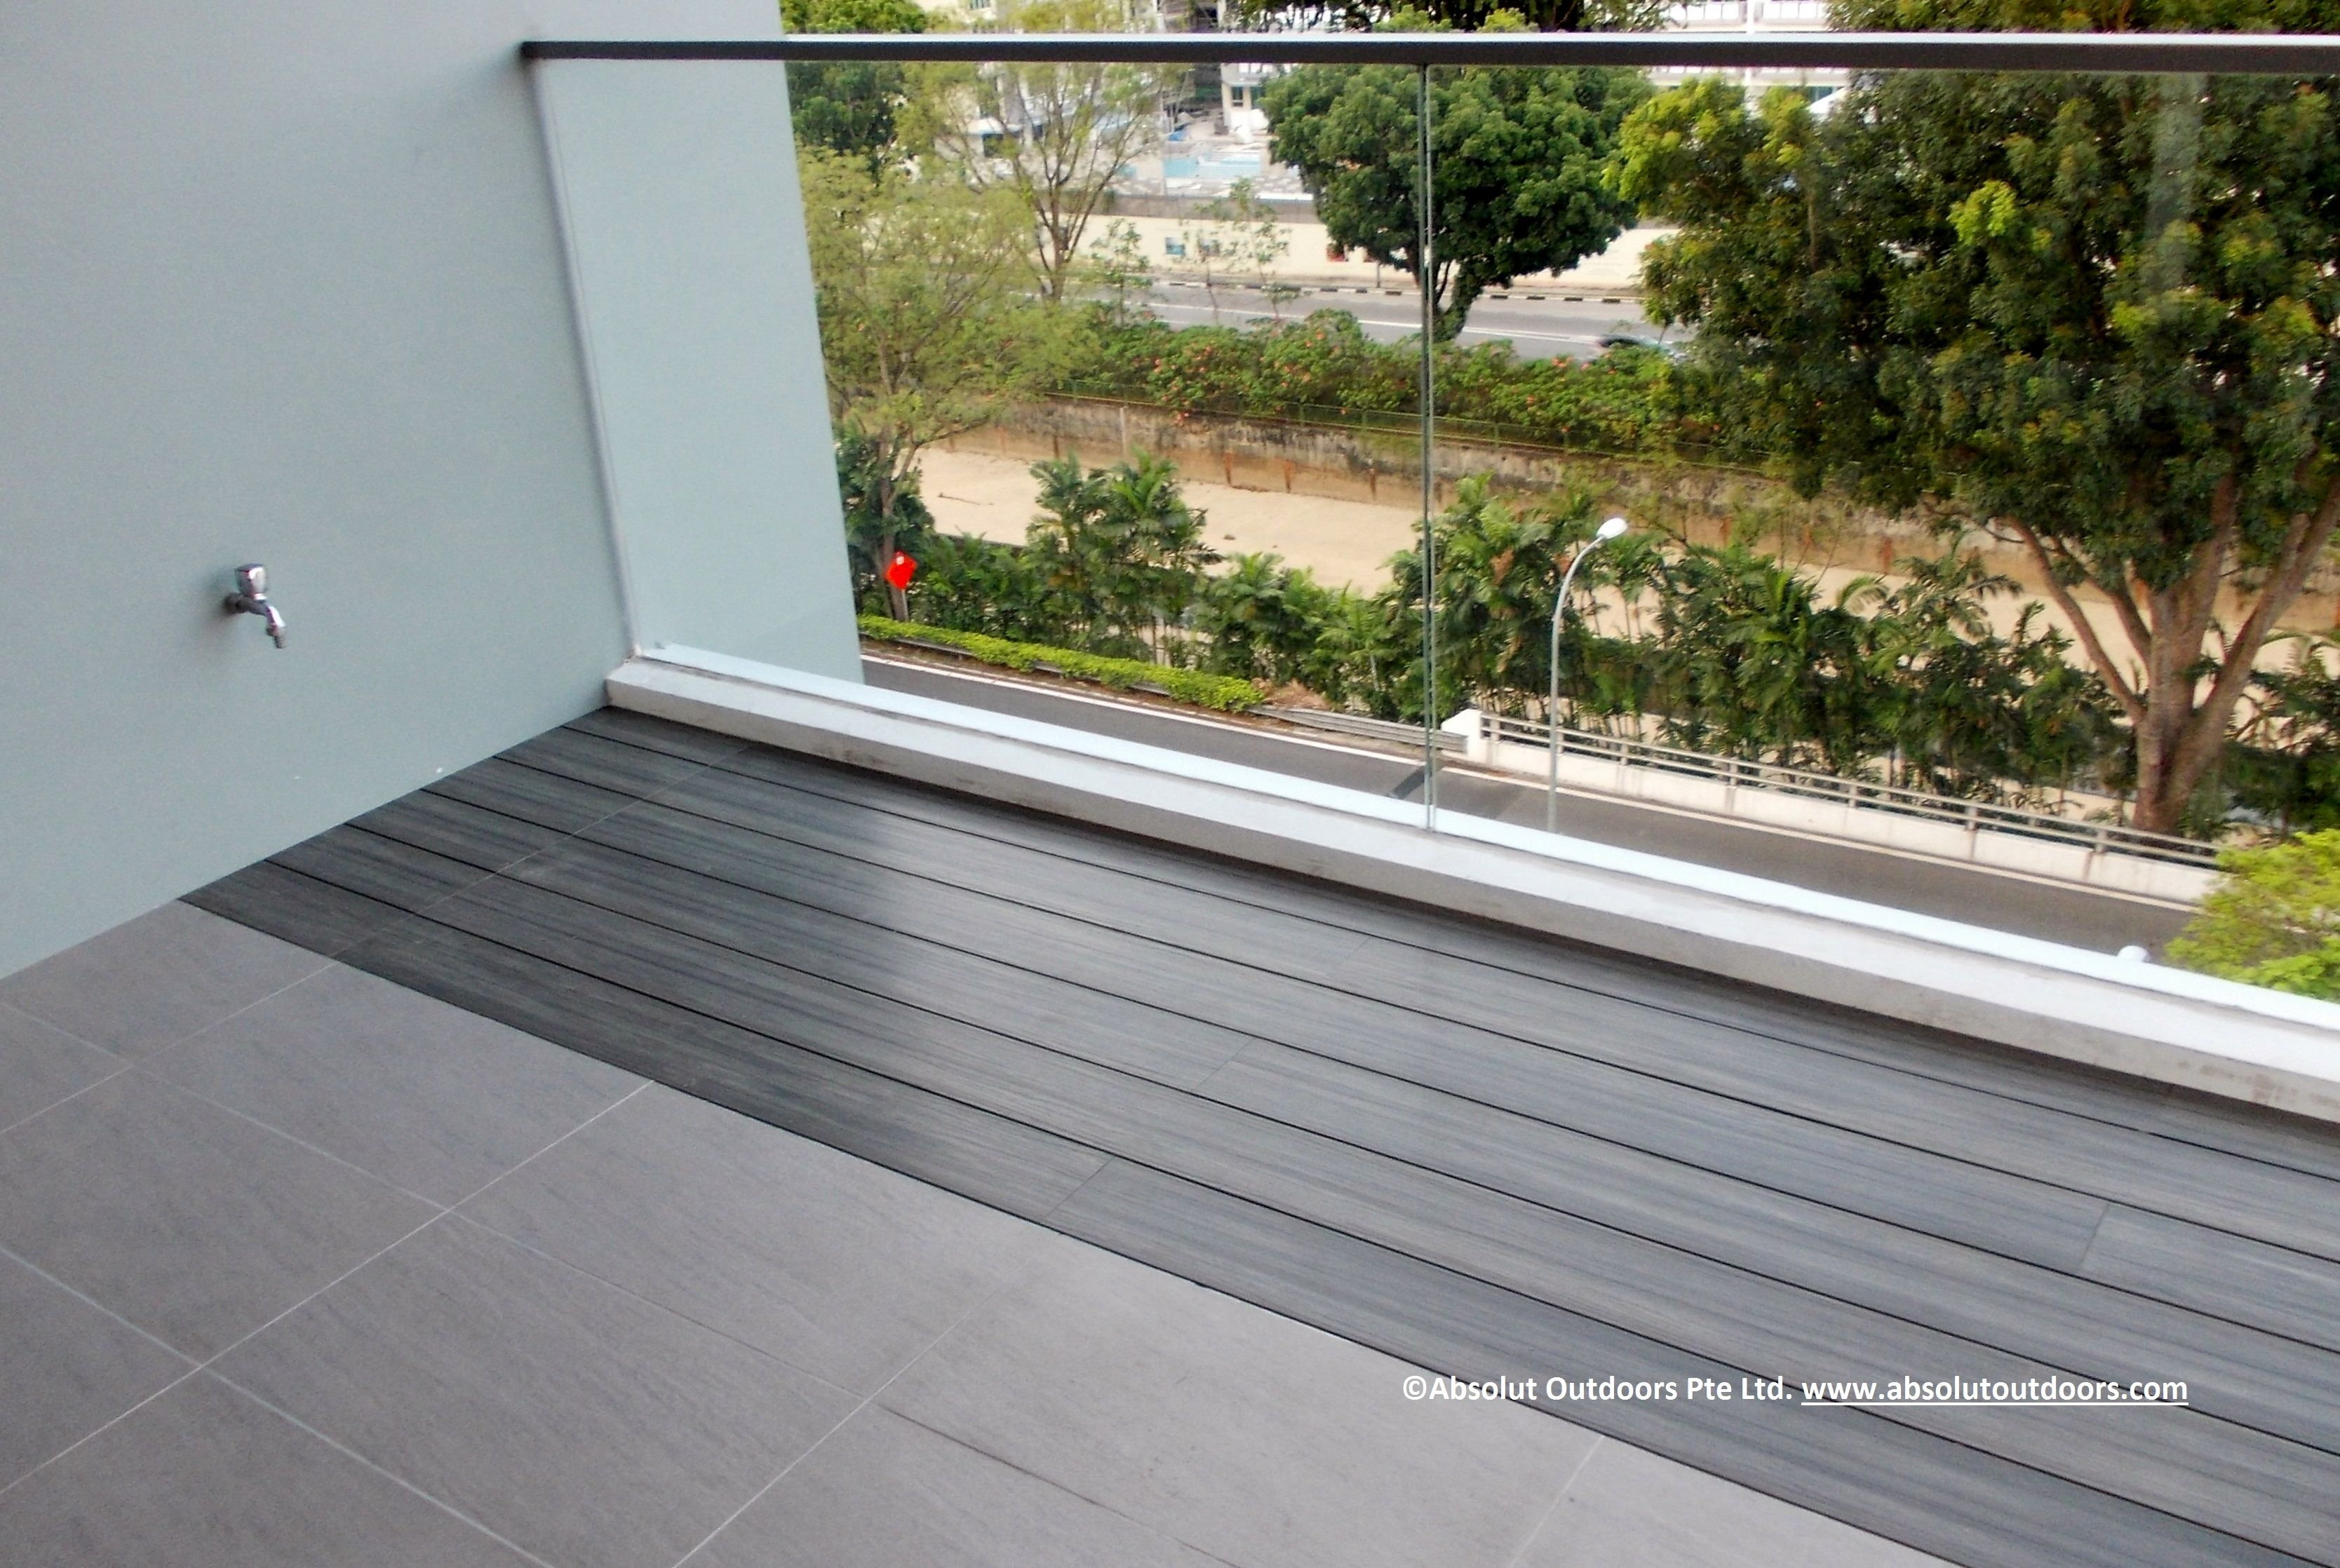 Planter Box With Composite Wood Decking